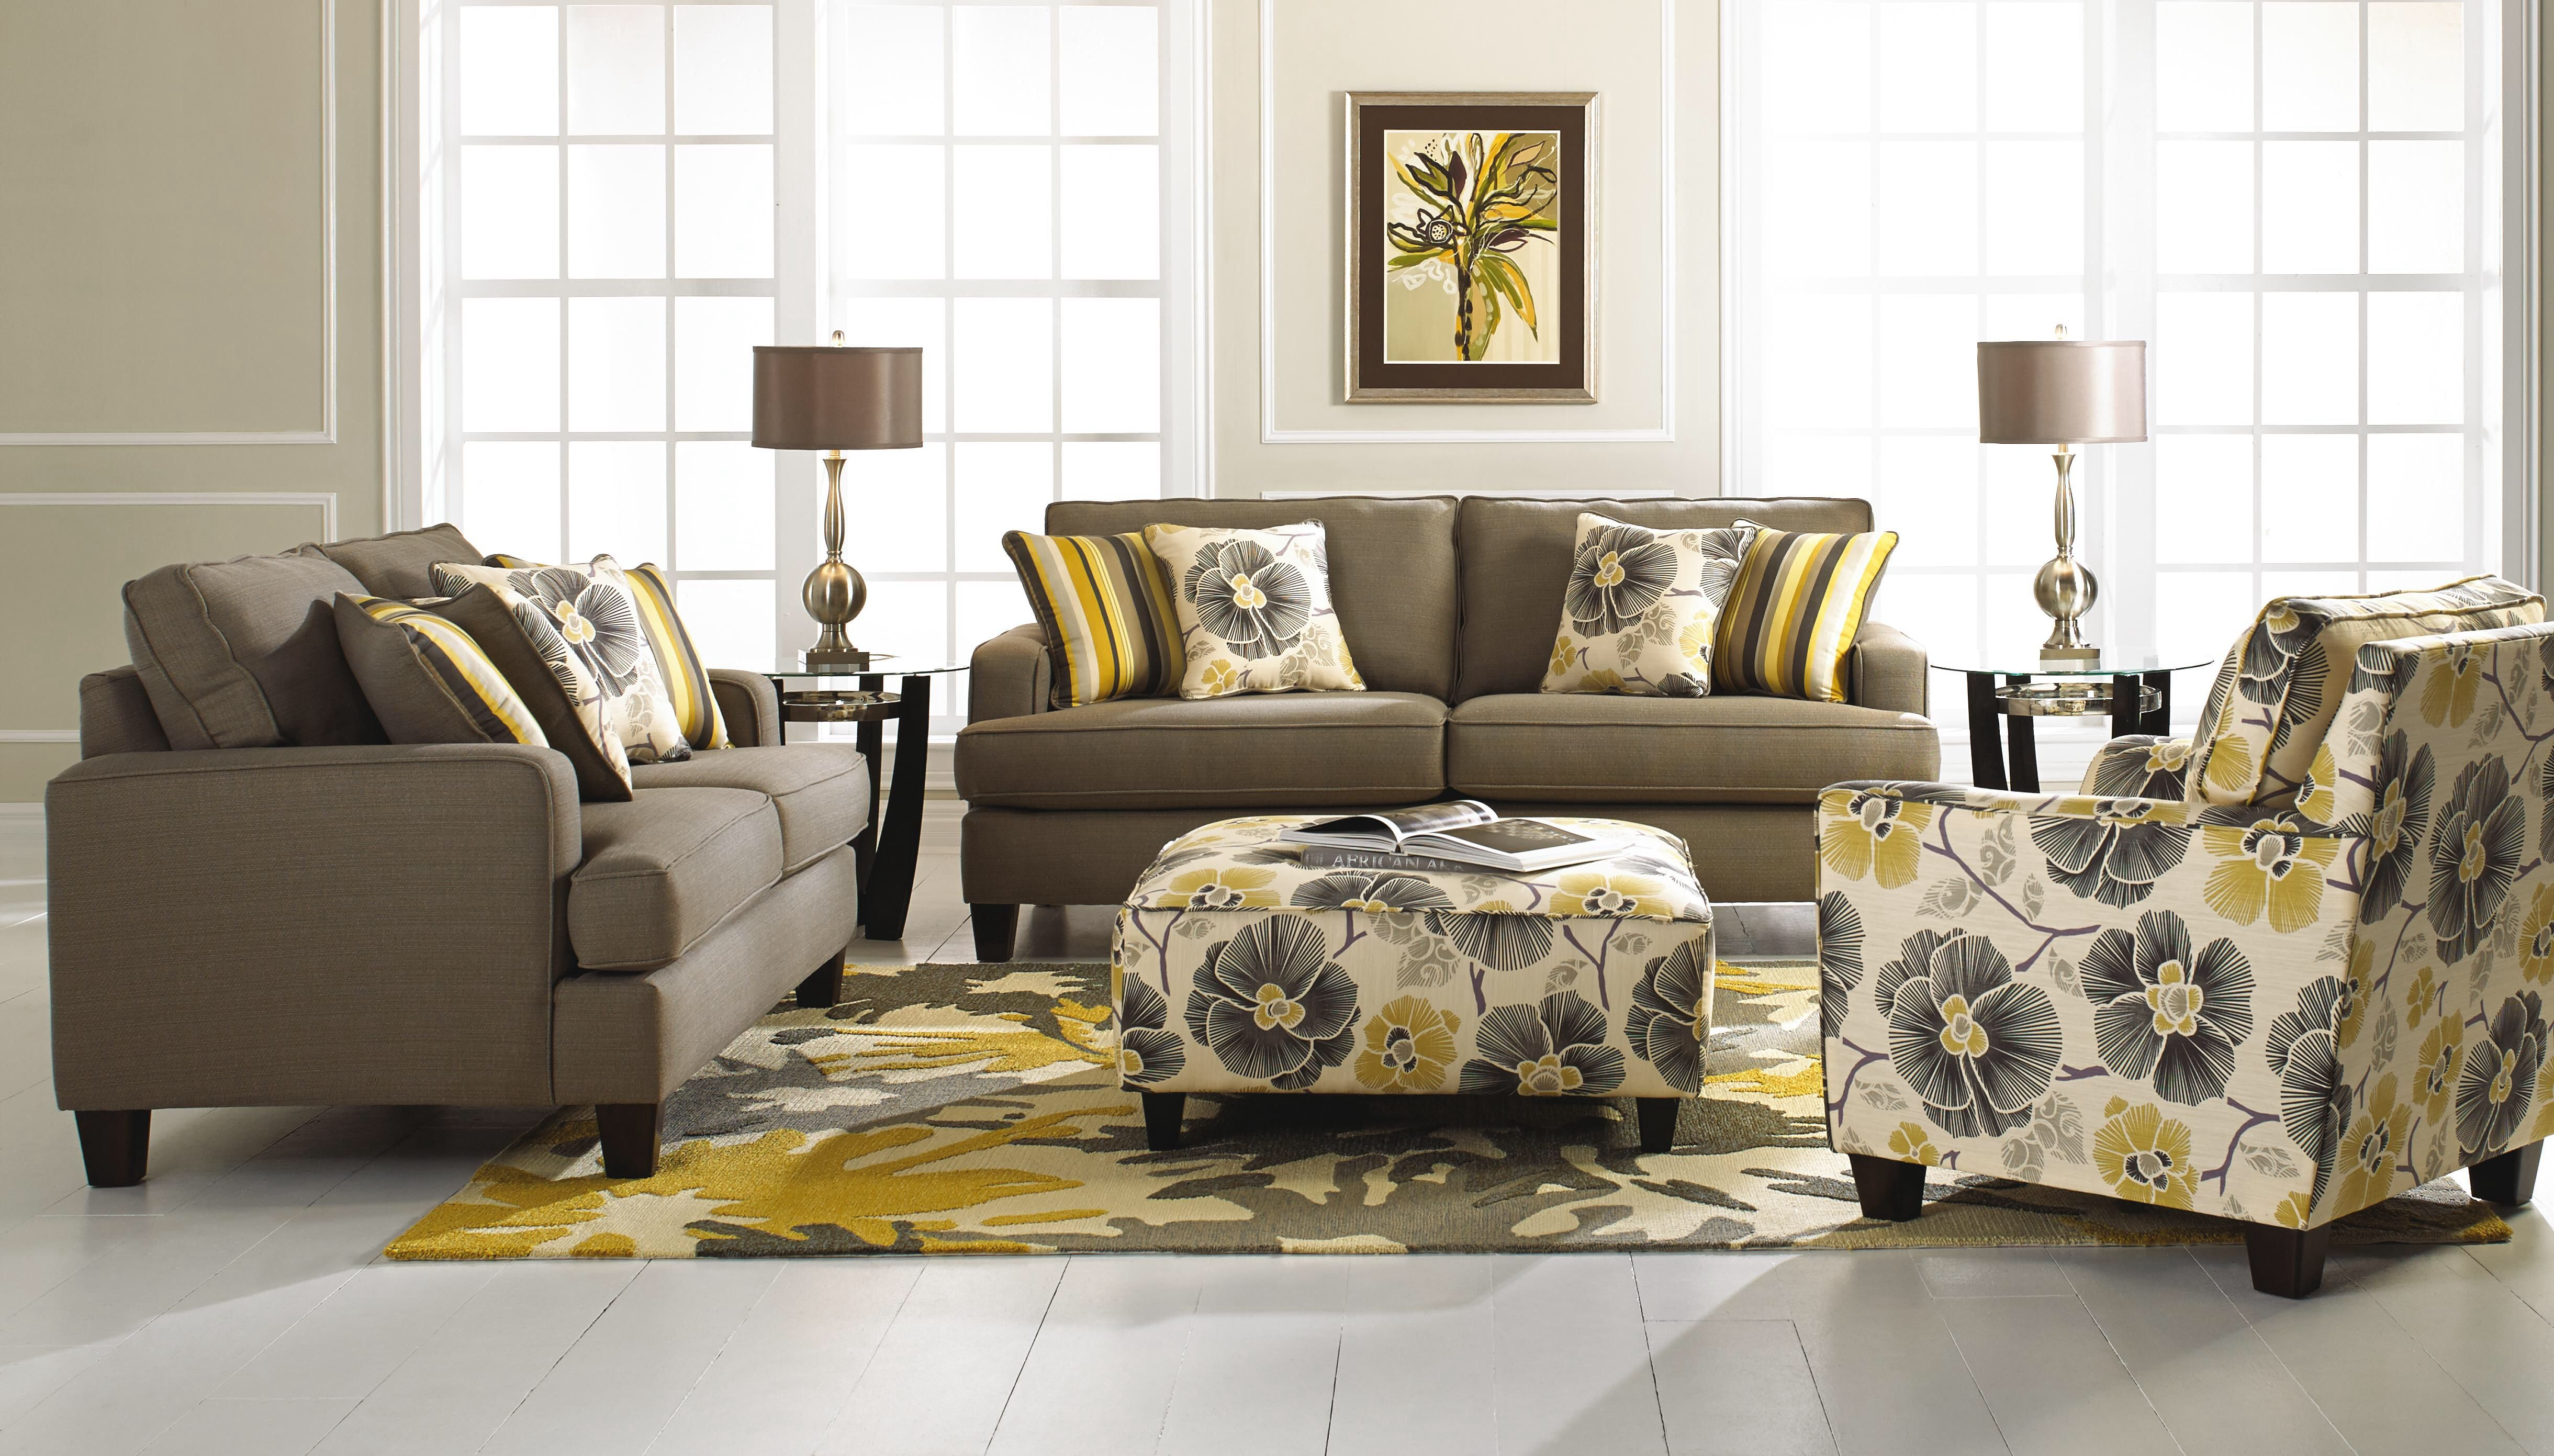 15 Awesome Initiatives Of How To Craft Yellow Living Room Set Cheap Living Room Sets Living Room Sets Living Room Sets Furniture Yellow living room set